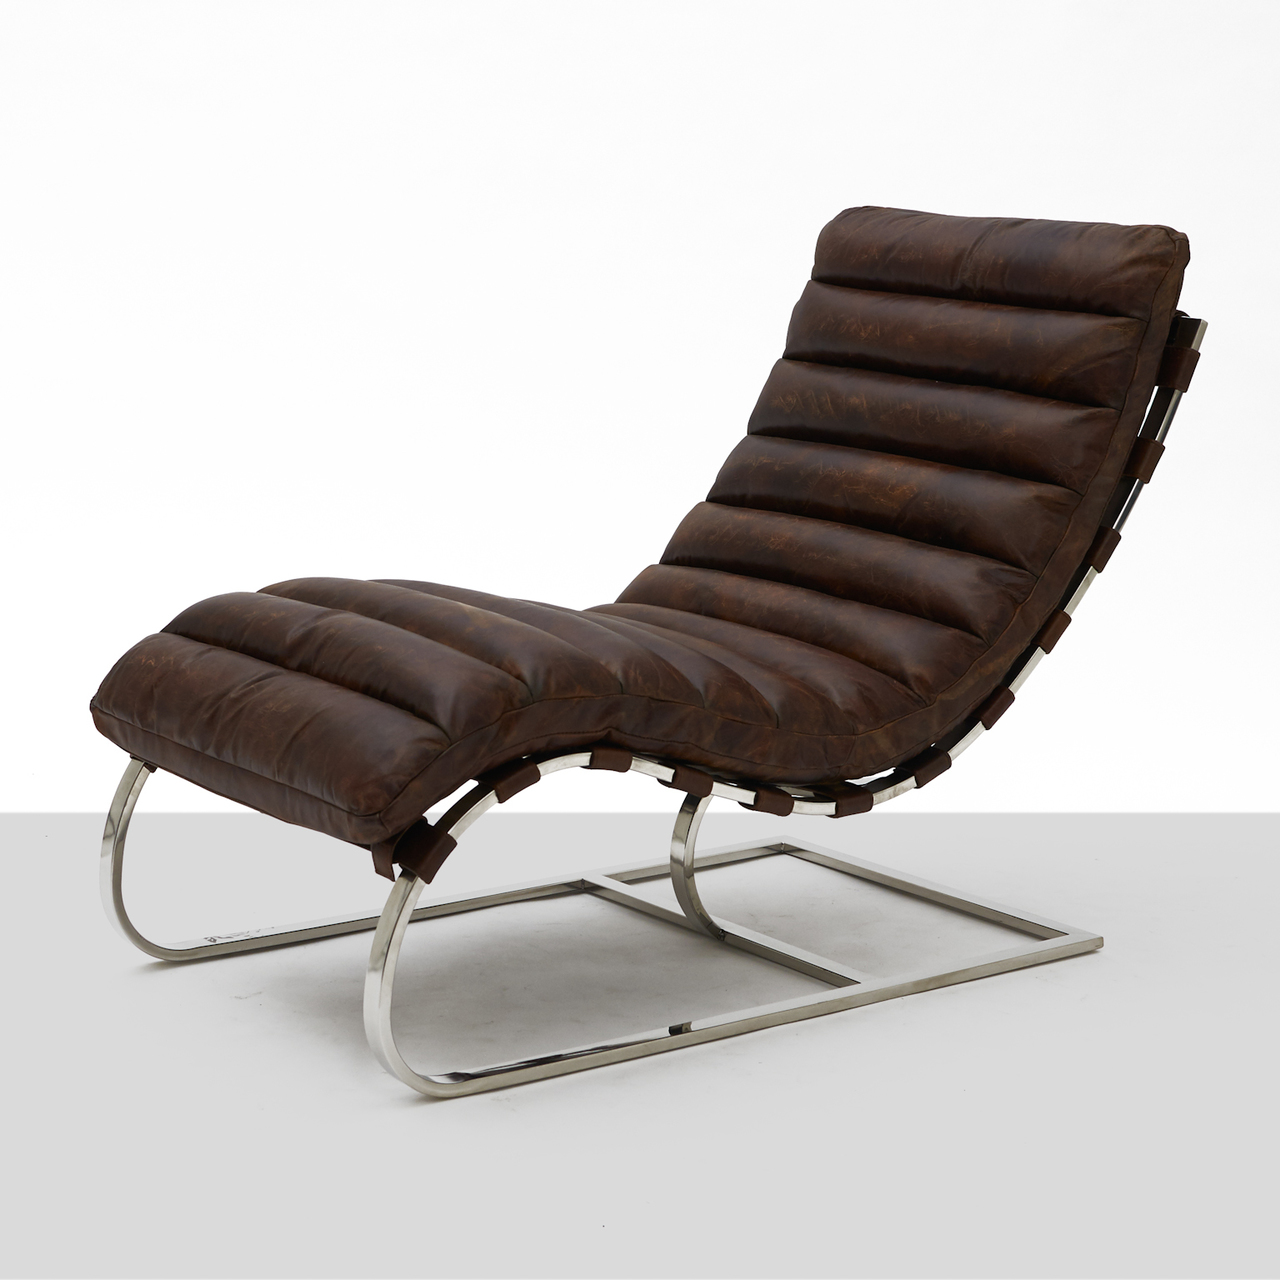 Cantilevered Chaise Lounge Attributed To Mies Van Der Rohe